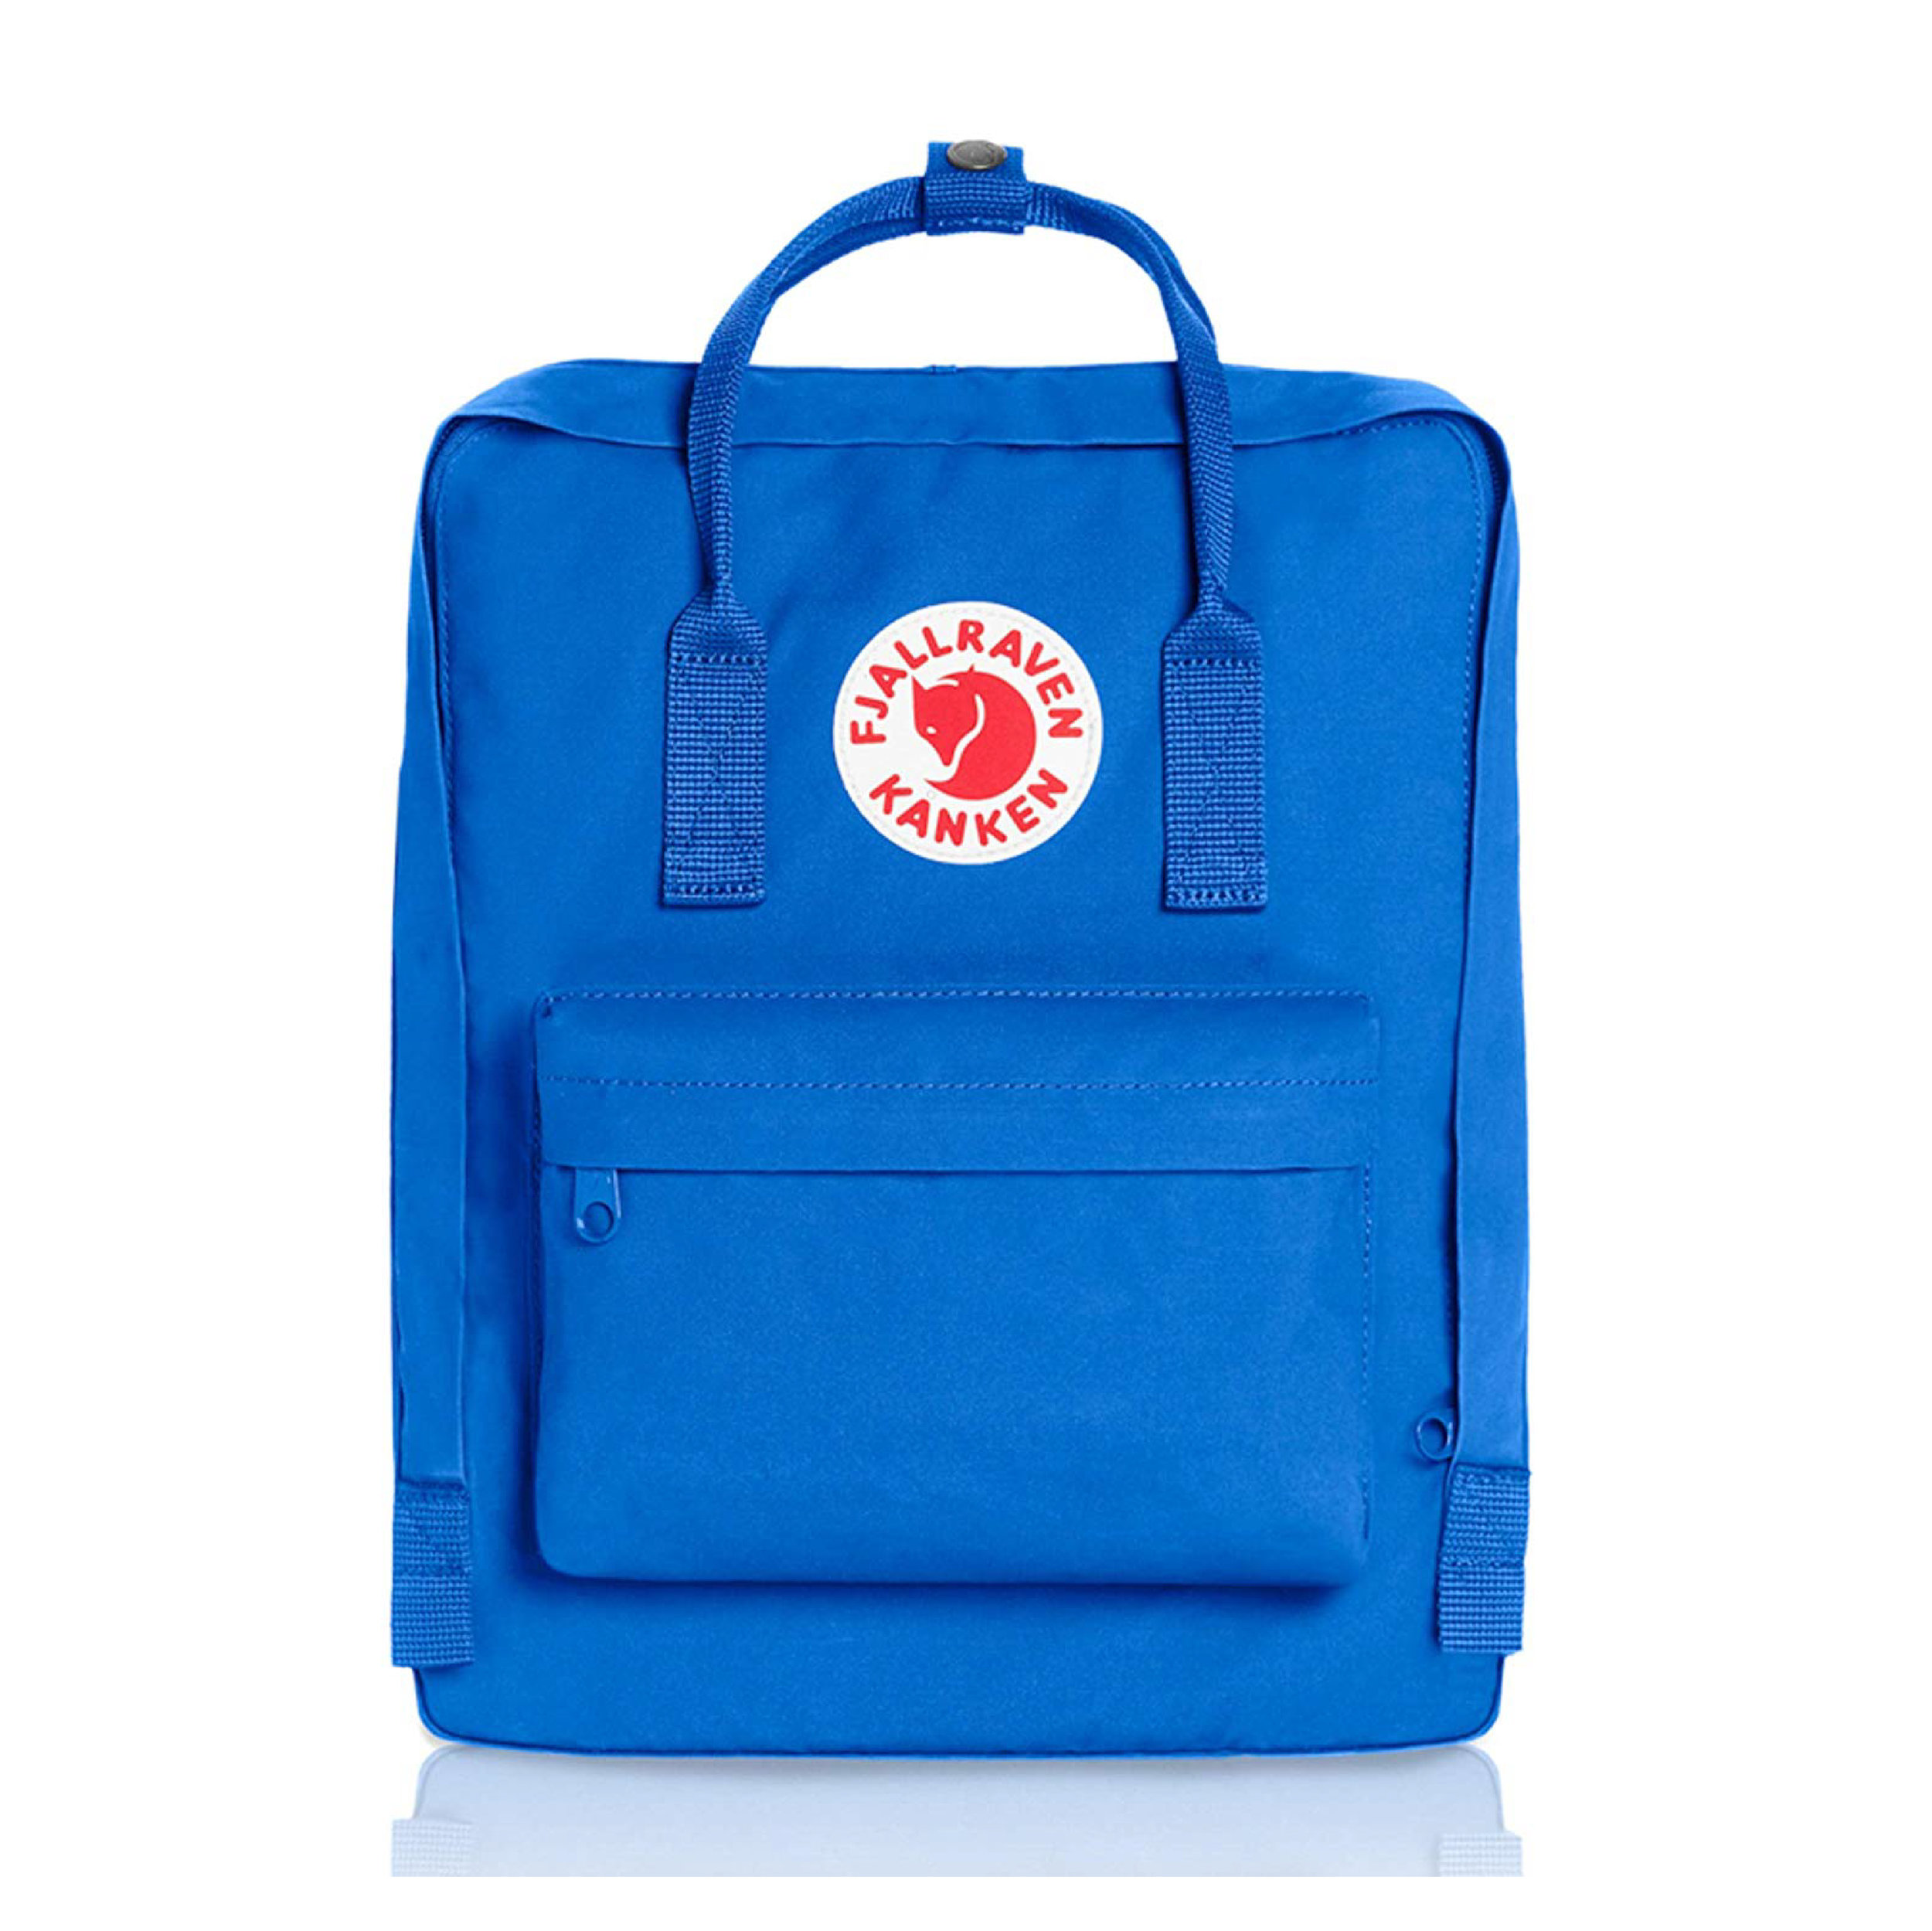 Fjallraven Kanken - The Fjallraven backpacks are the cool thing these days. The high school girls we know are reaching for these. They also come in a smaller size for younger ones.